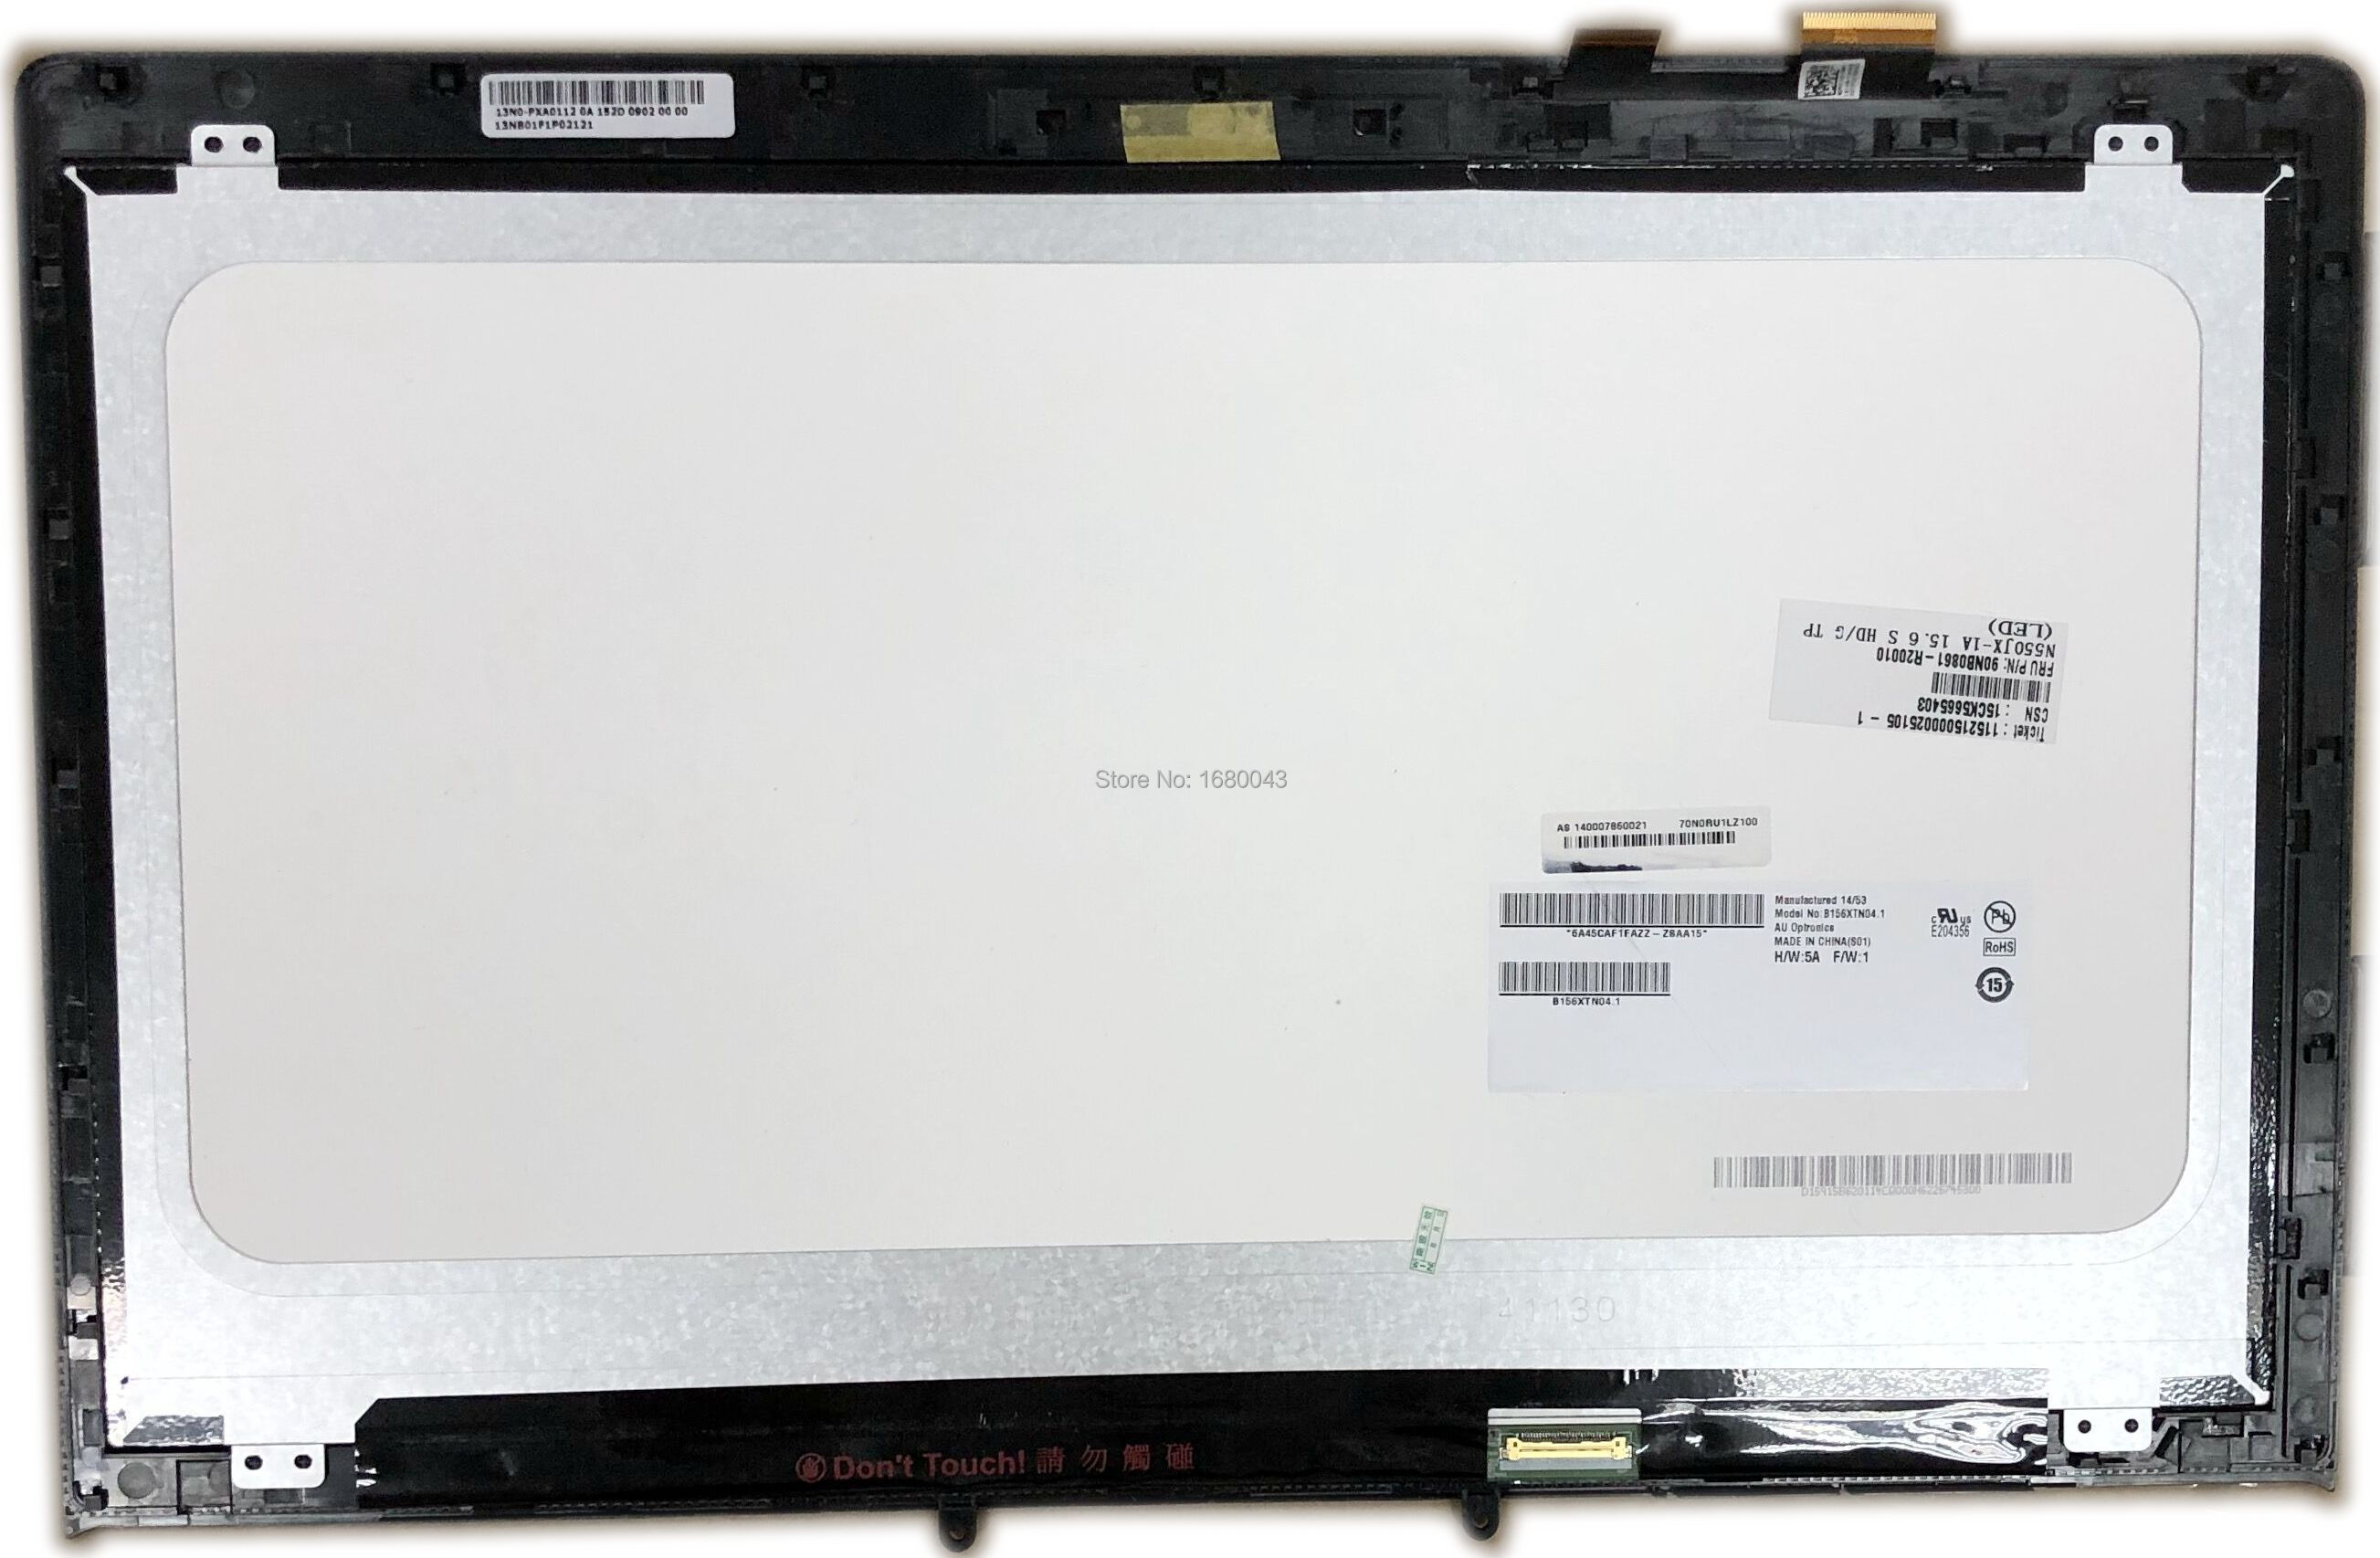 For Asus VivoBook S200E S200 PC replacement Touch Screen digitizer glass panel